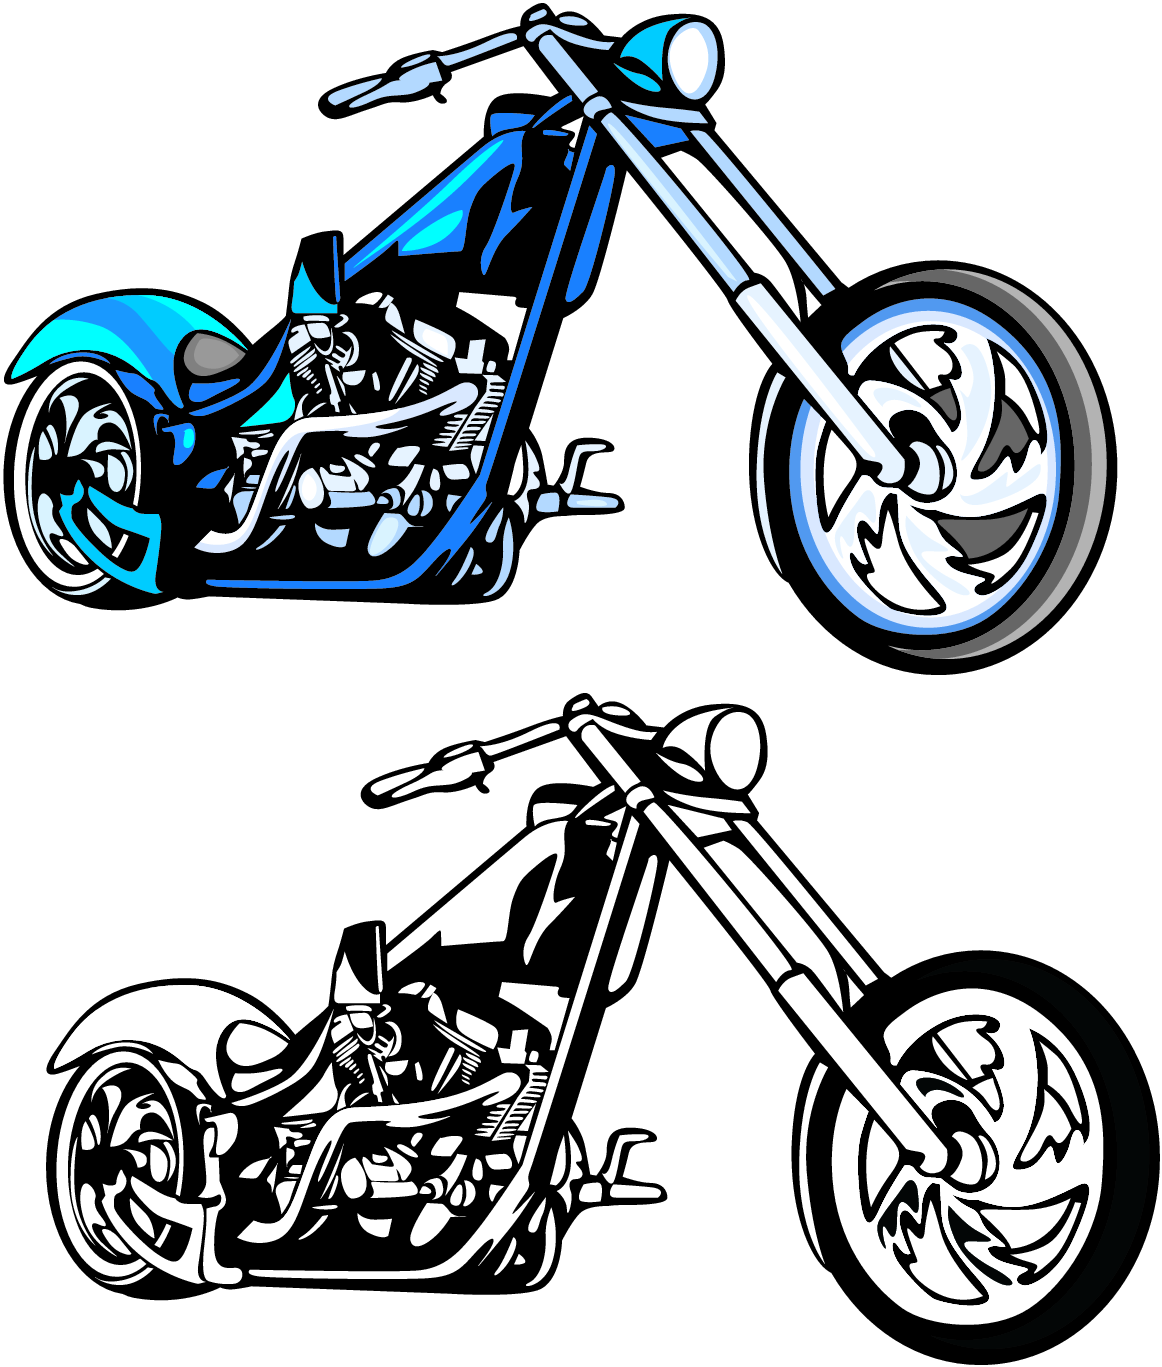 1162x1367 Simple Motorcycle Clipart Clipart Panda